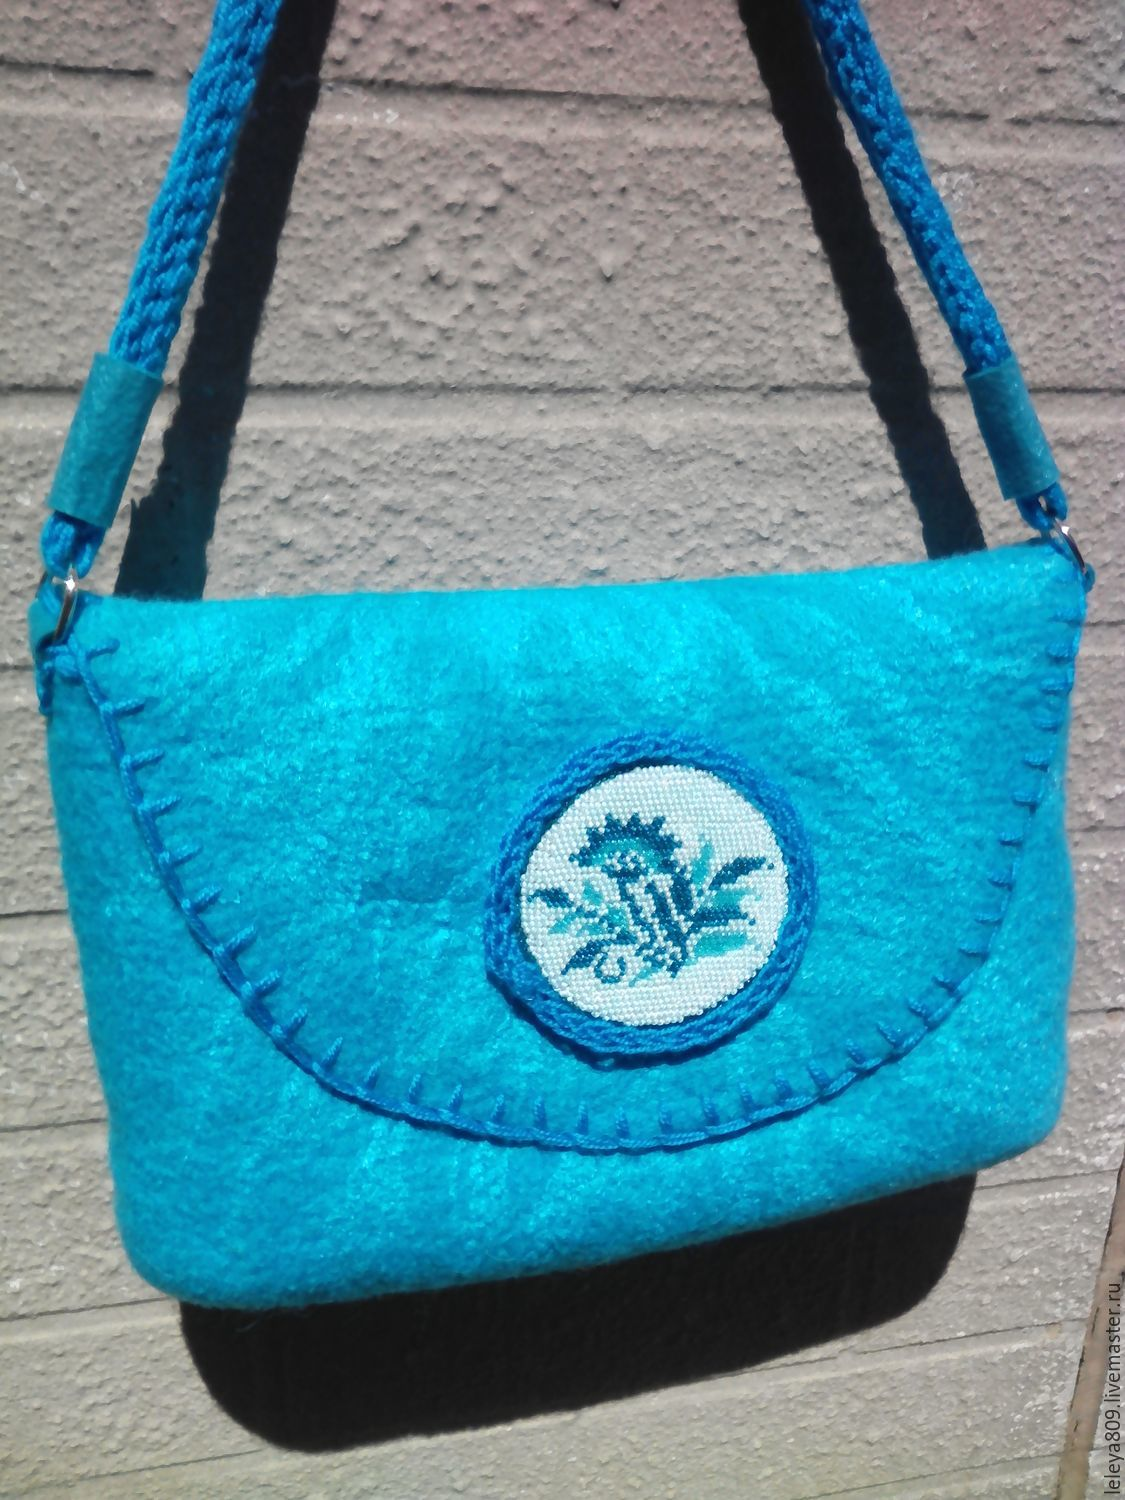 Biryusinka. Bag felted from natural wool. The author's work.